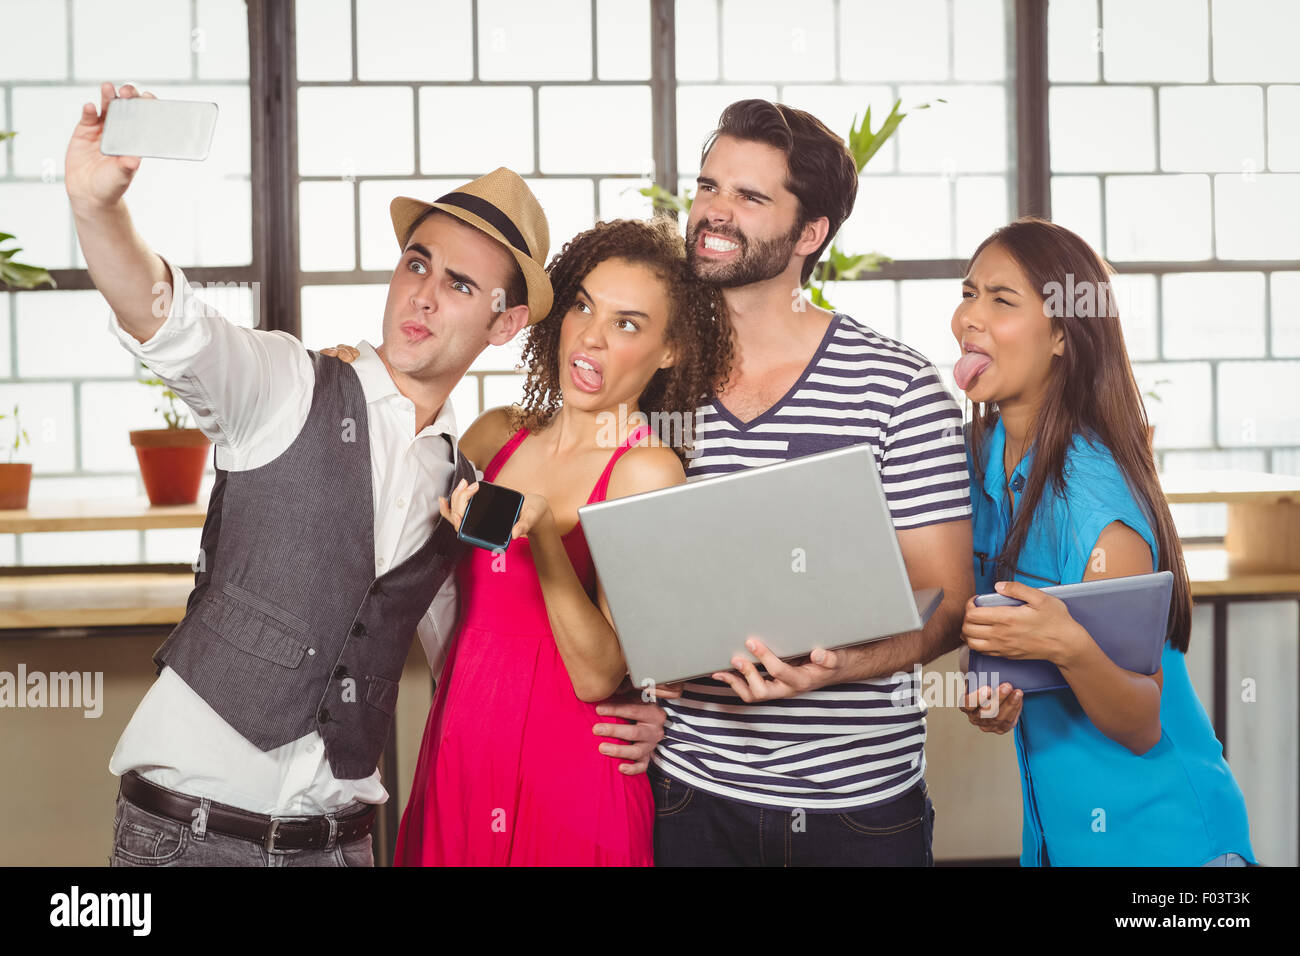 Grimacing friends taking selfies - Stock Image